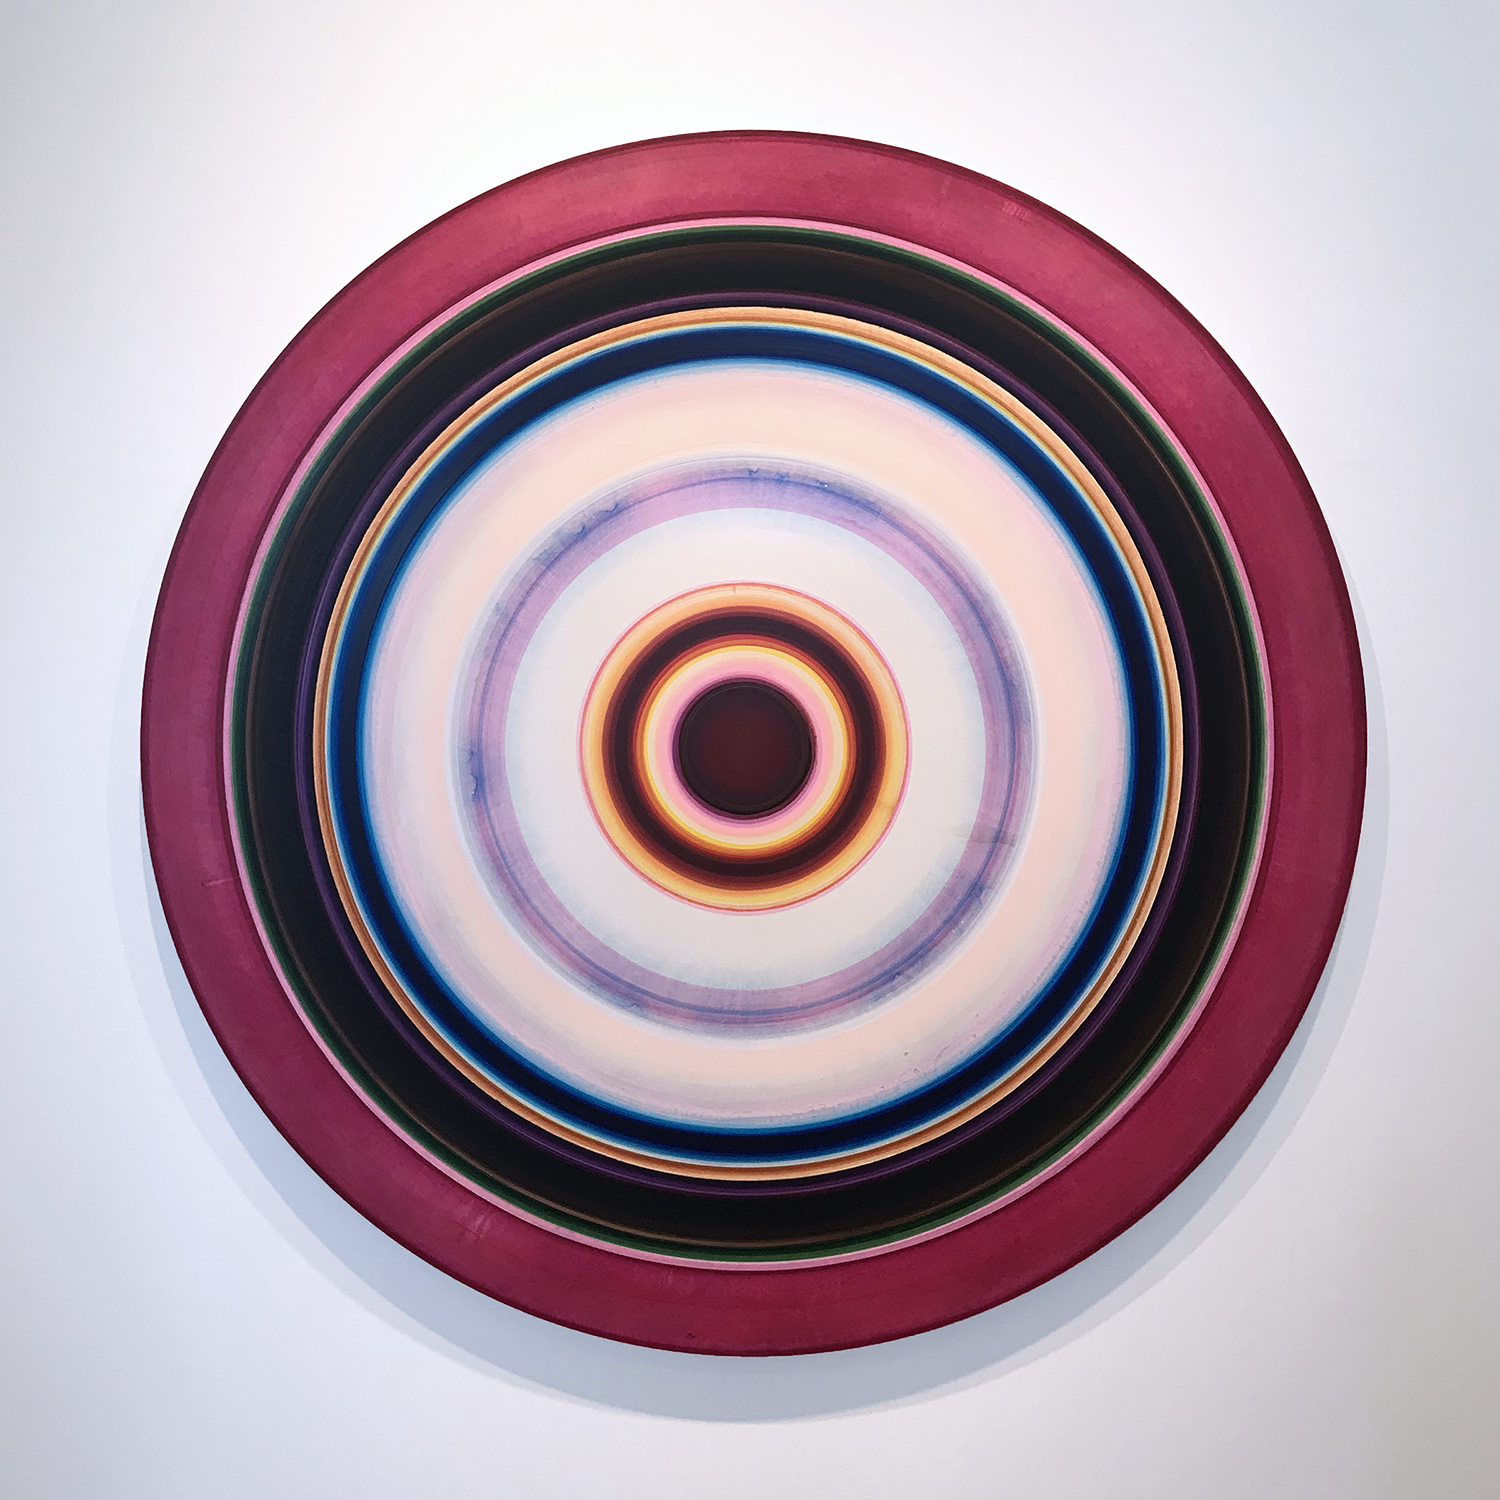 Ulrich Panzer, untitled (18-60-1), acrylic on aluminum, 60 in. diameter